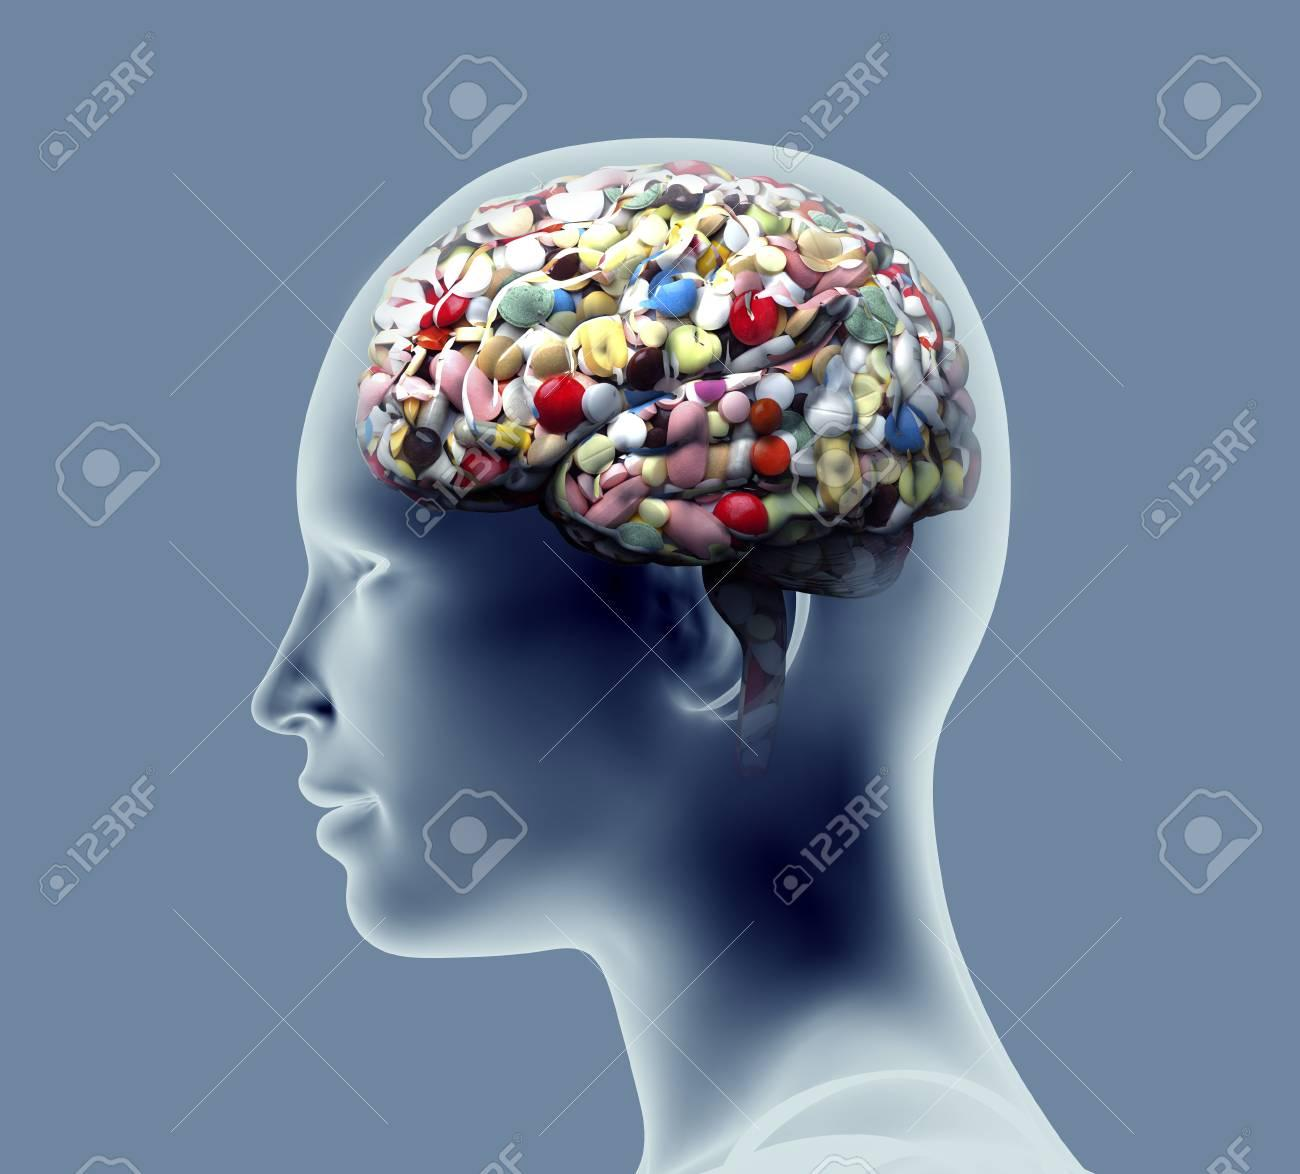 C:\Users\Stefan\Downloads\53796326-x-ray-of-human-head-with-pills-and-drugs-for-brain-.jpg